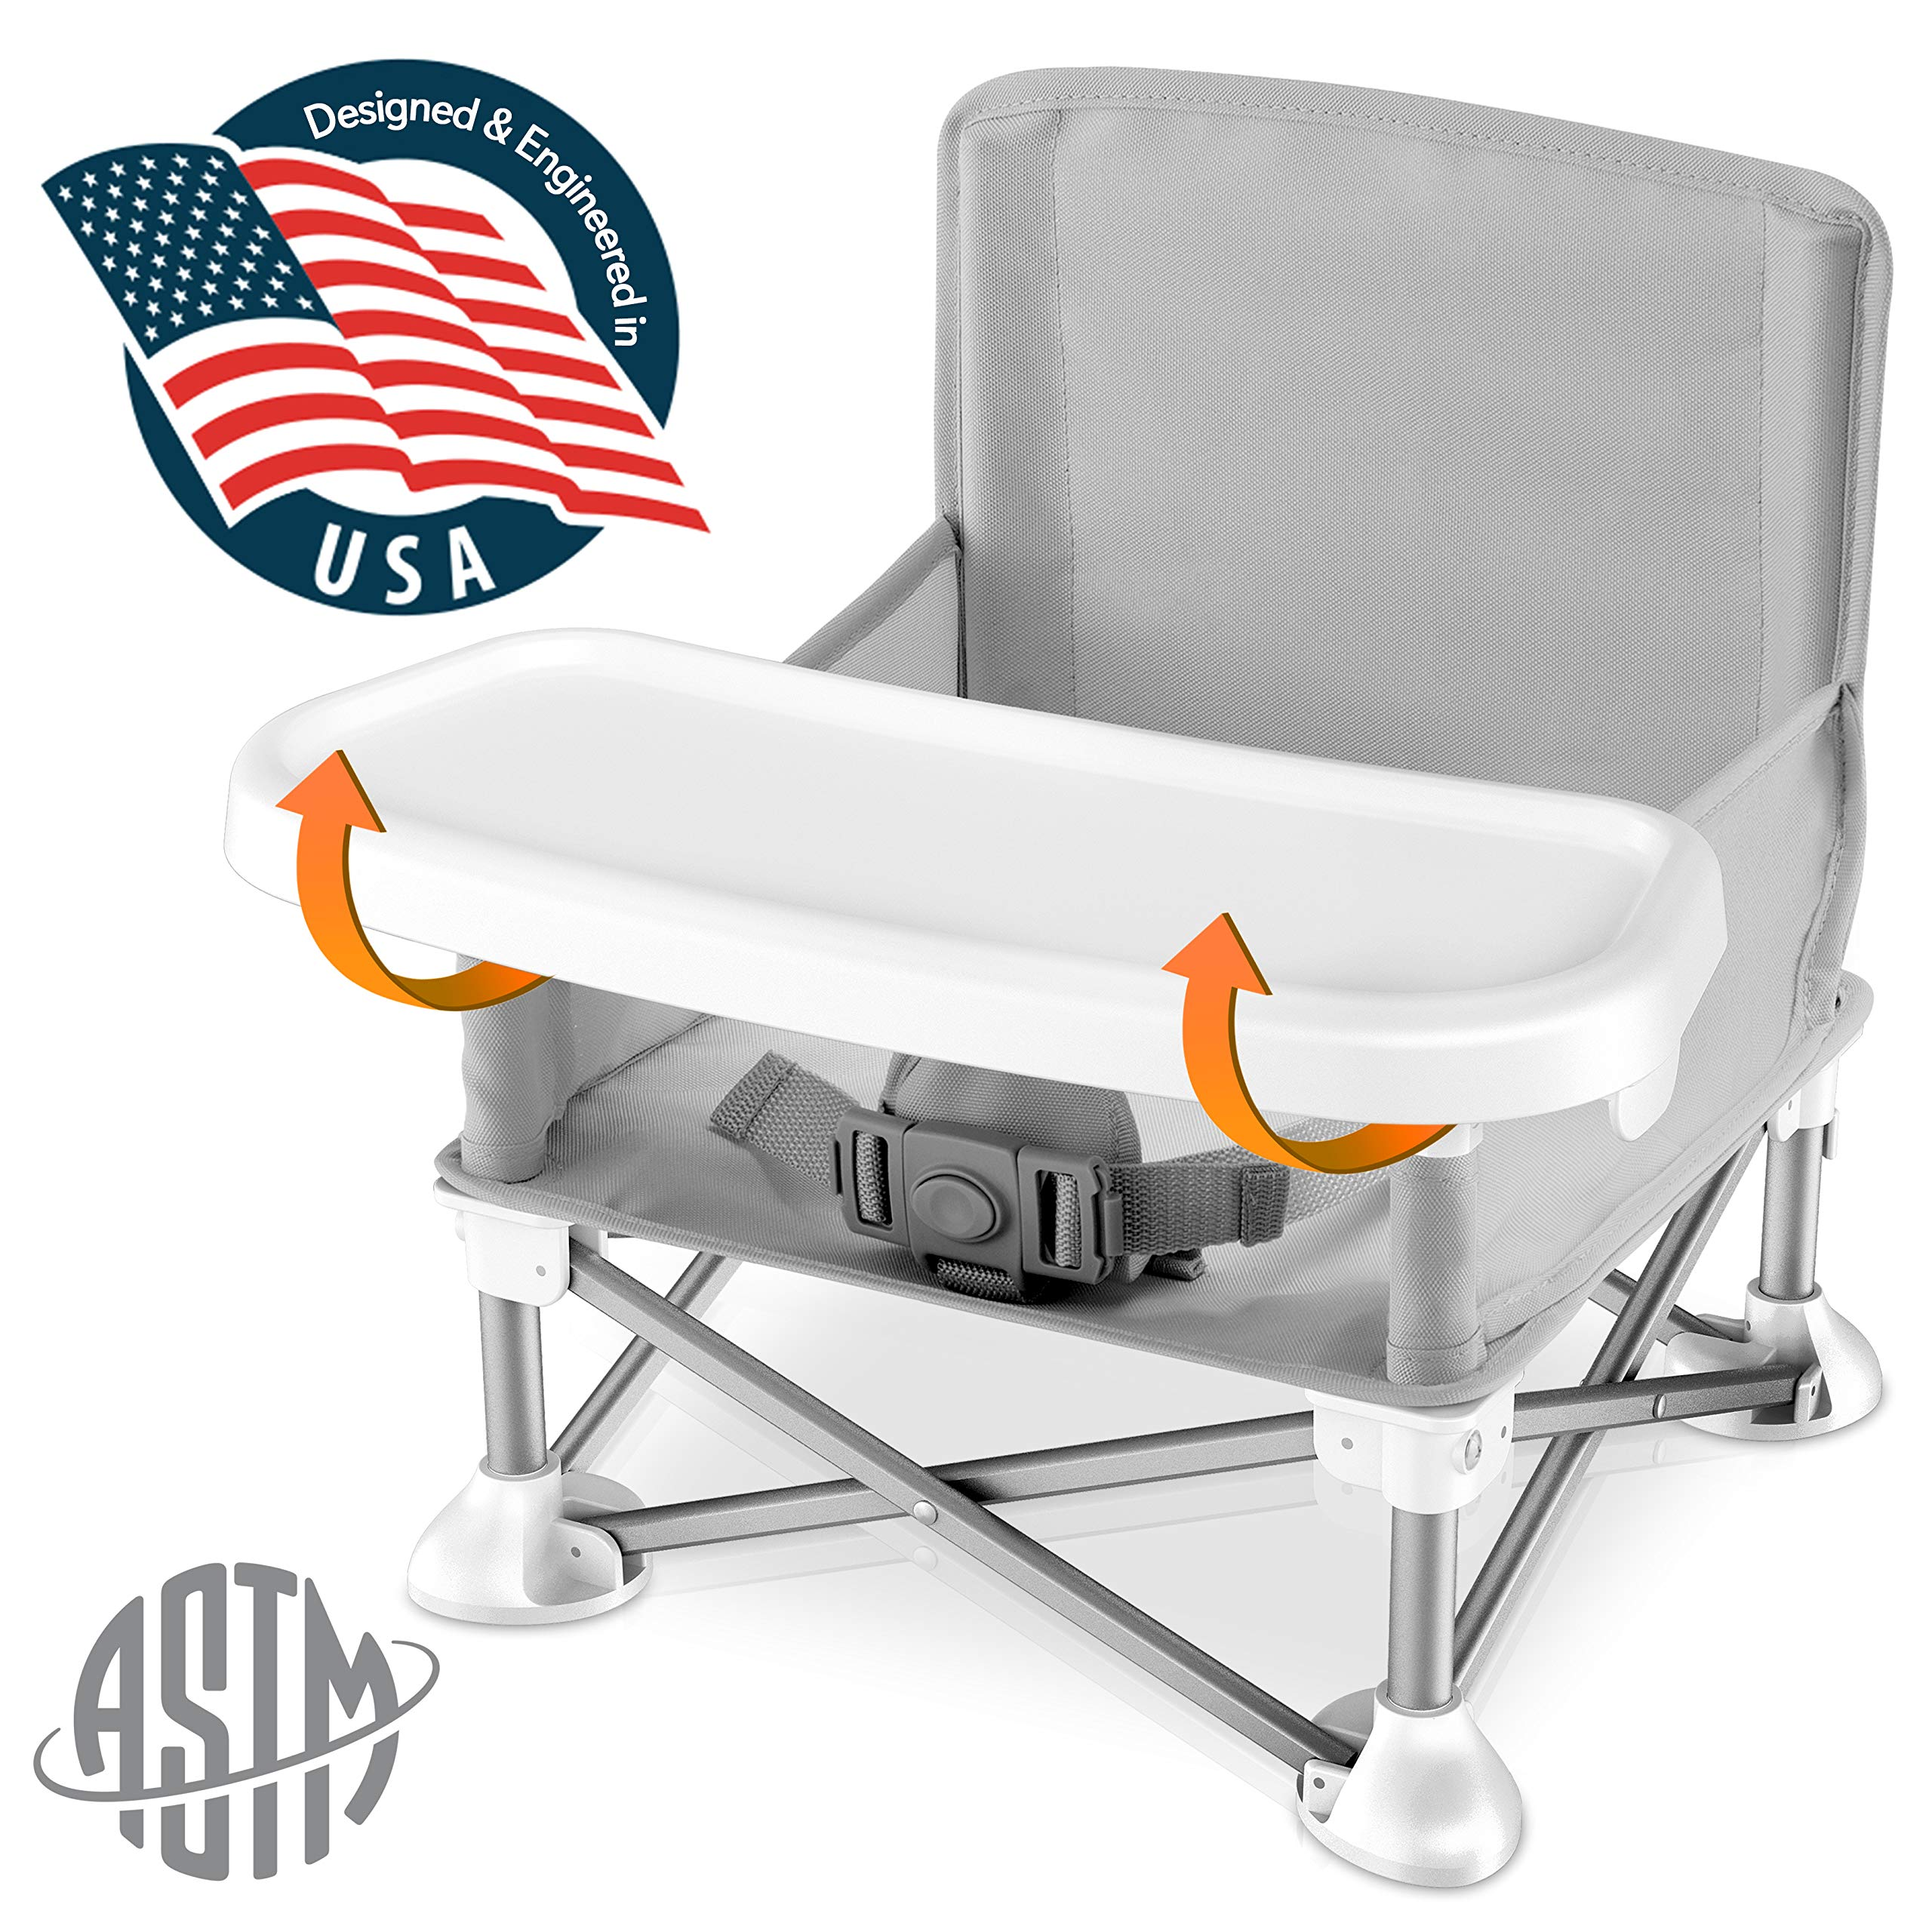 Baby Seat Booster High Chair - Portable Toddler Booster Seat -Lightweight Easy Travel Pop-n-Sit Folding Booster Feeding Chair w/ Aluminum frame, Safety Belt for Camping/Beach/Lawn Weatherproof  SLBS66 by SereneLife